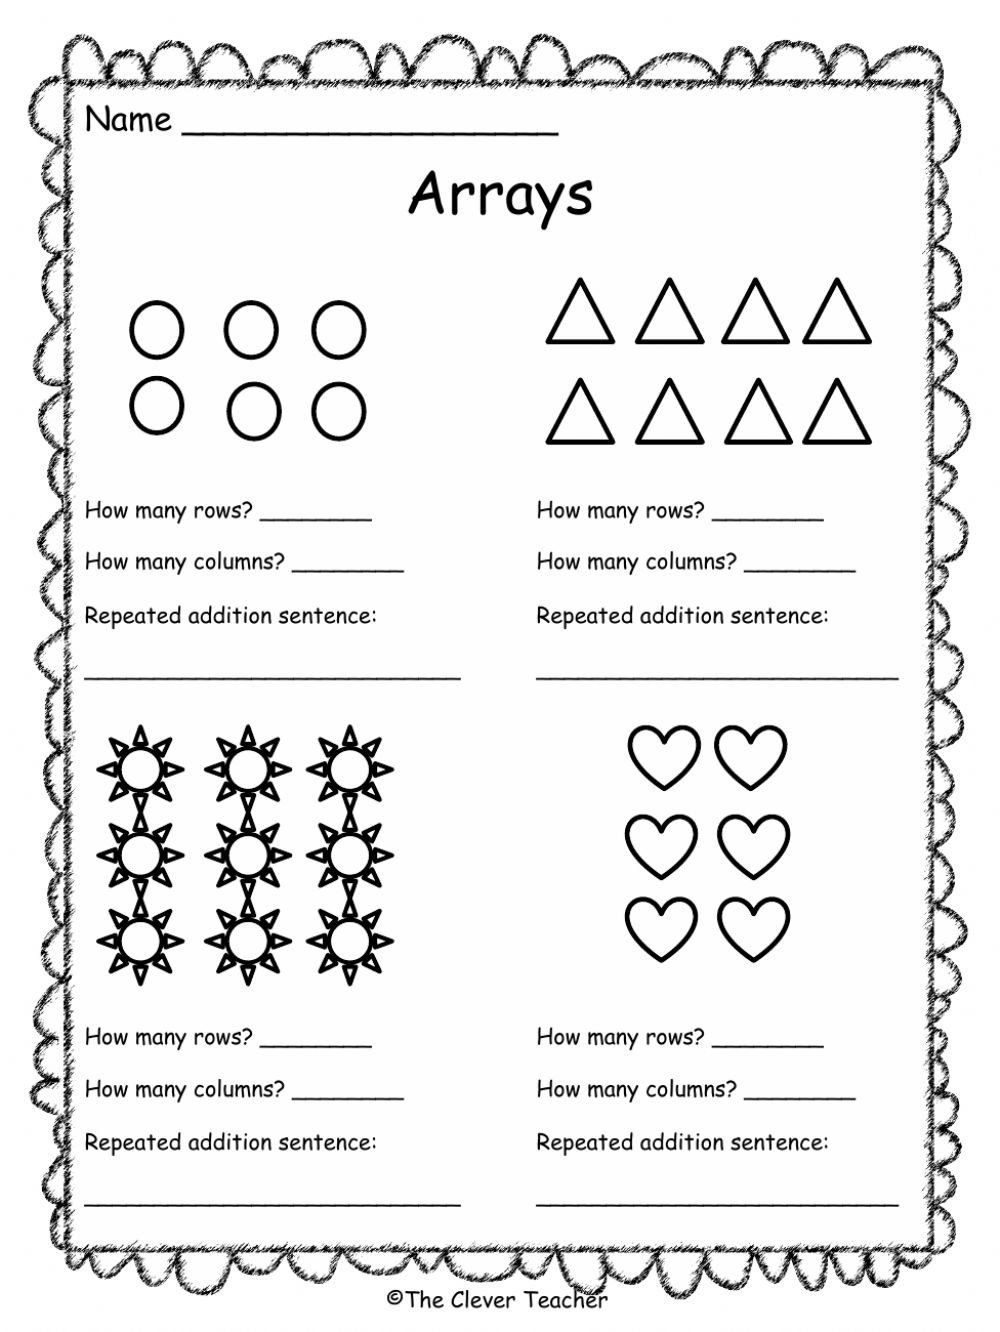 Repeated Addition and Arrays Arrays Interactive Worksheet   Array worksheets [ 1332 x 1000 Pixel ]